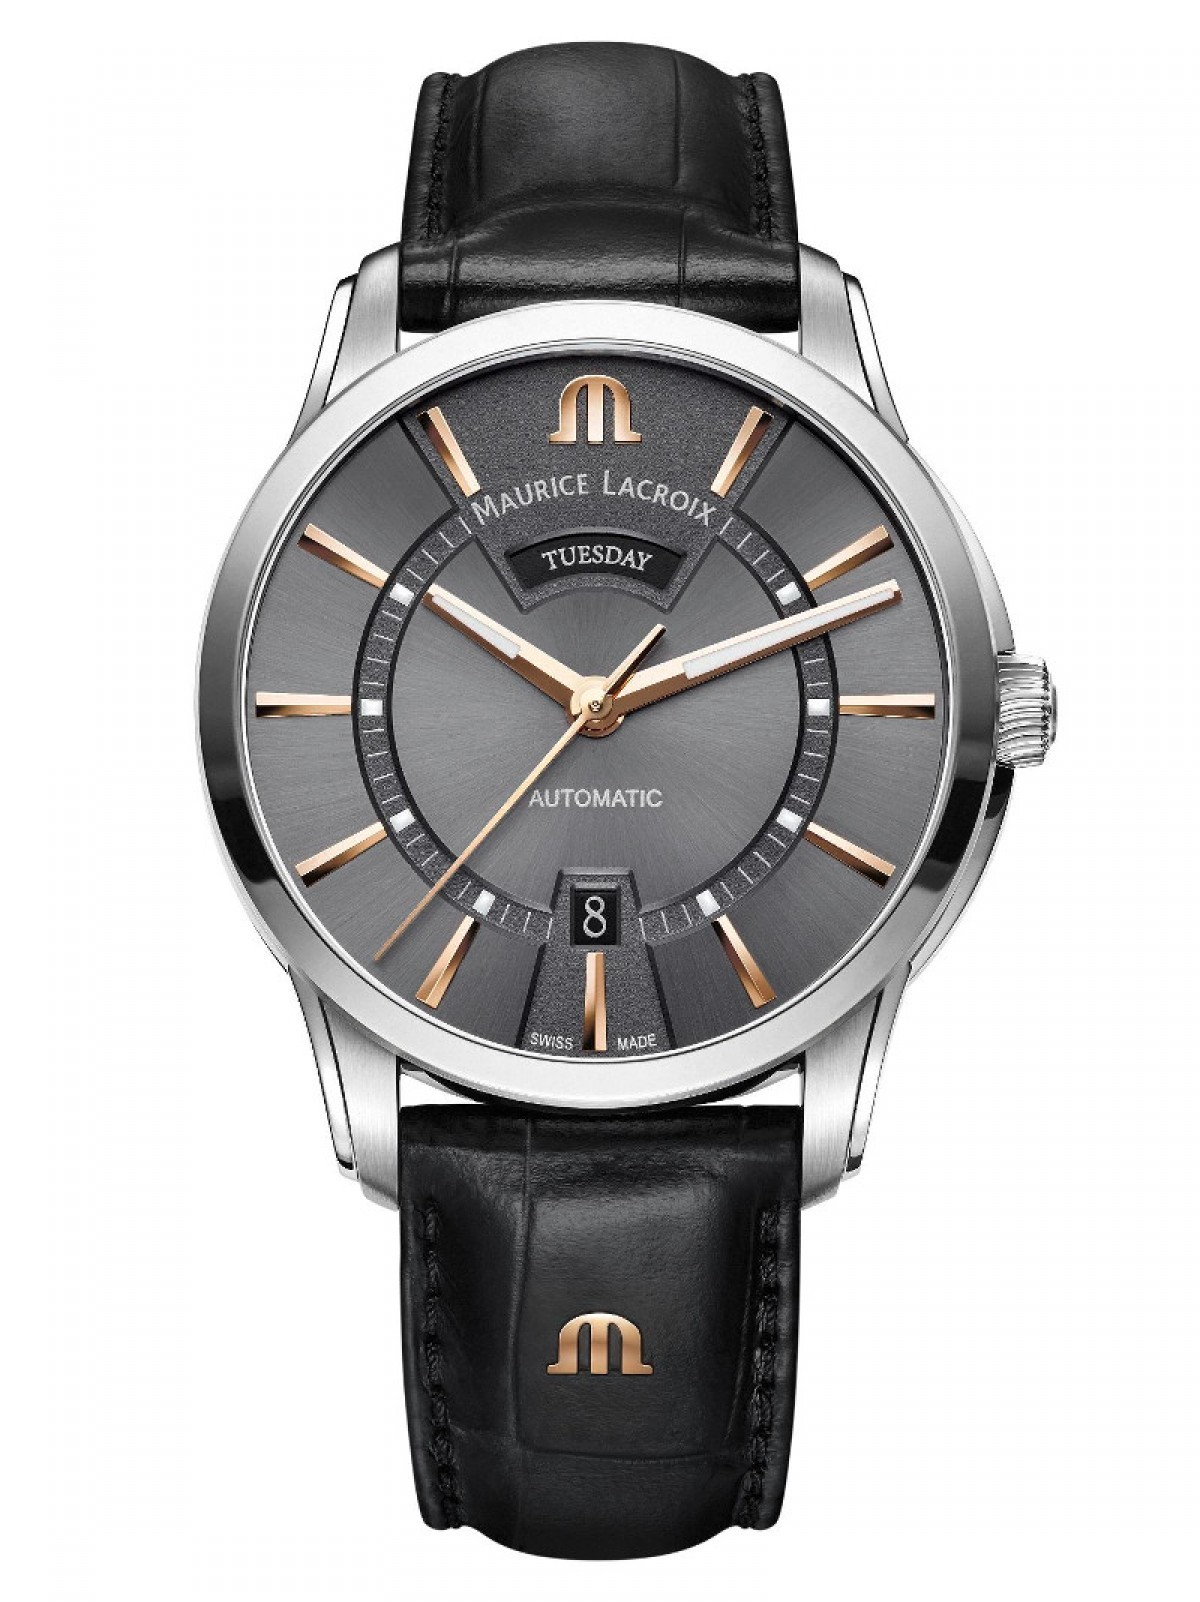 Maurice Lacroix PT6358-SS001-331-1 Day Date watches